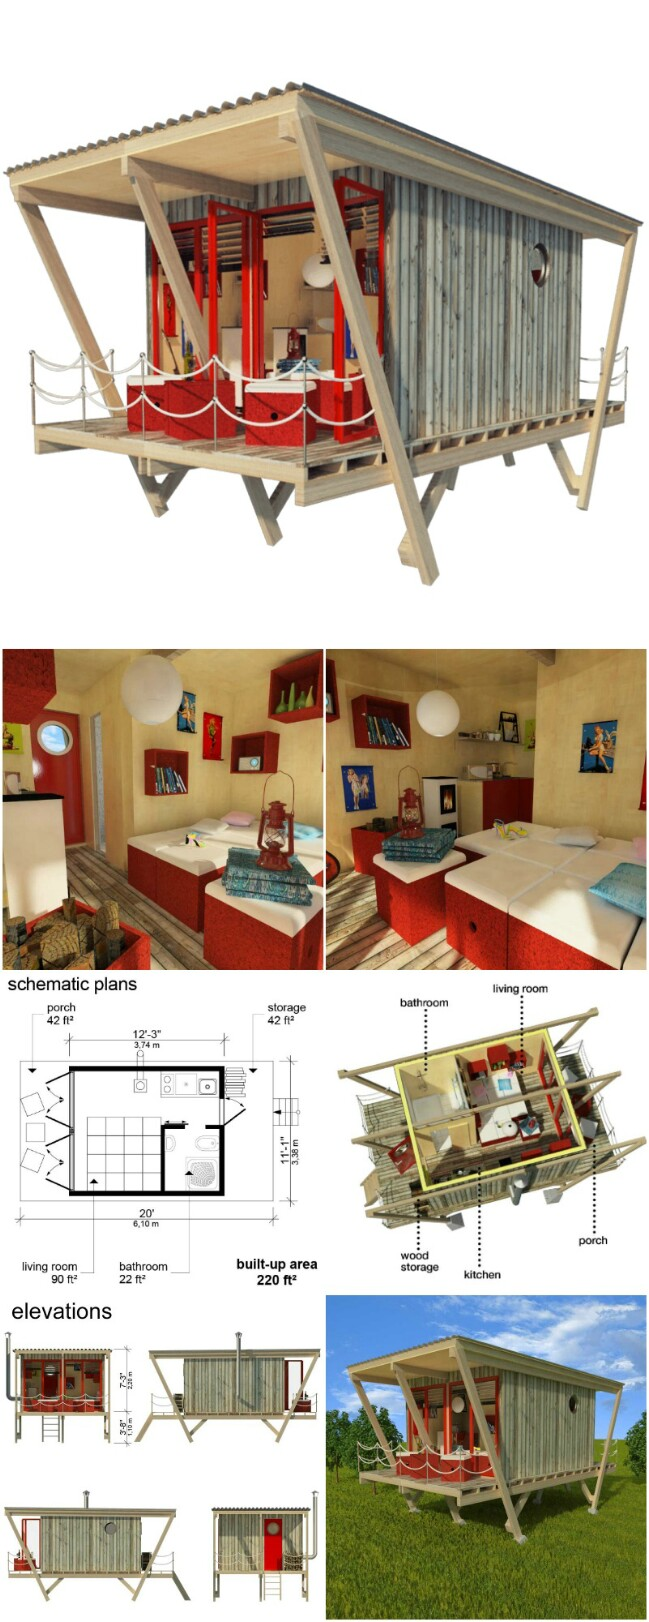 25 plans to build your own fully customized tiny house on for Diy small house plans